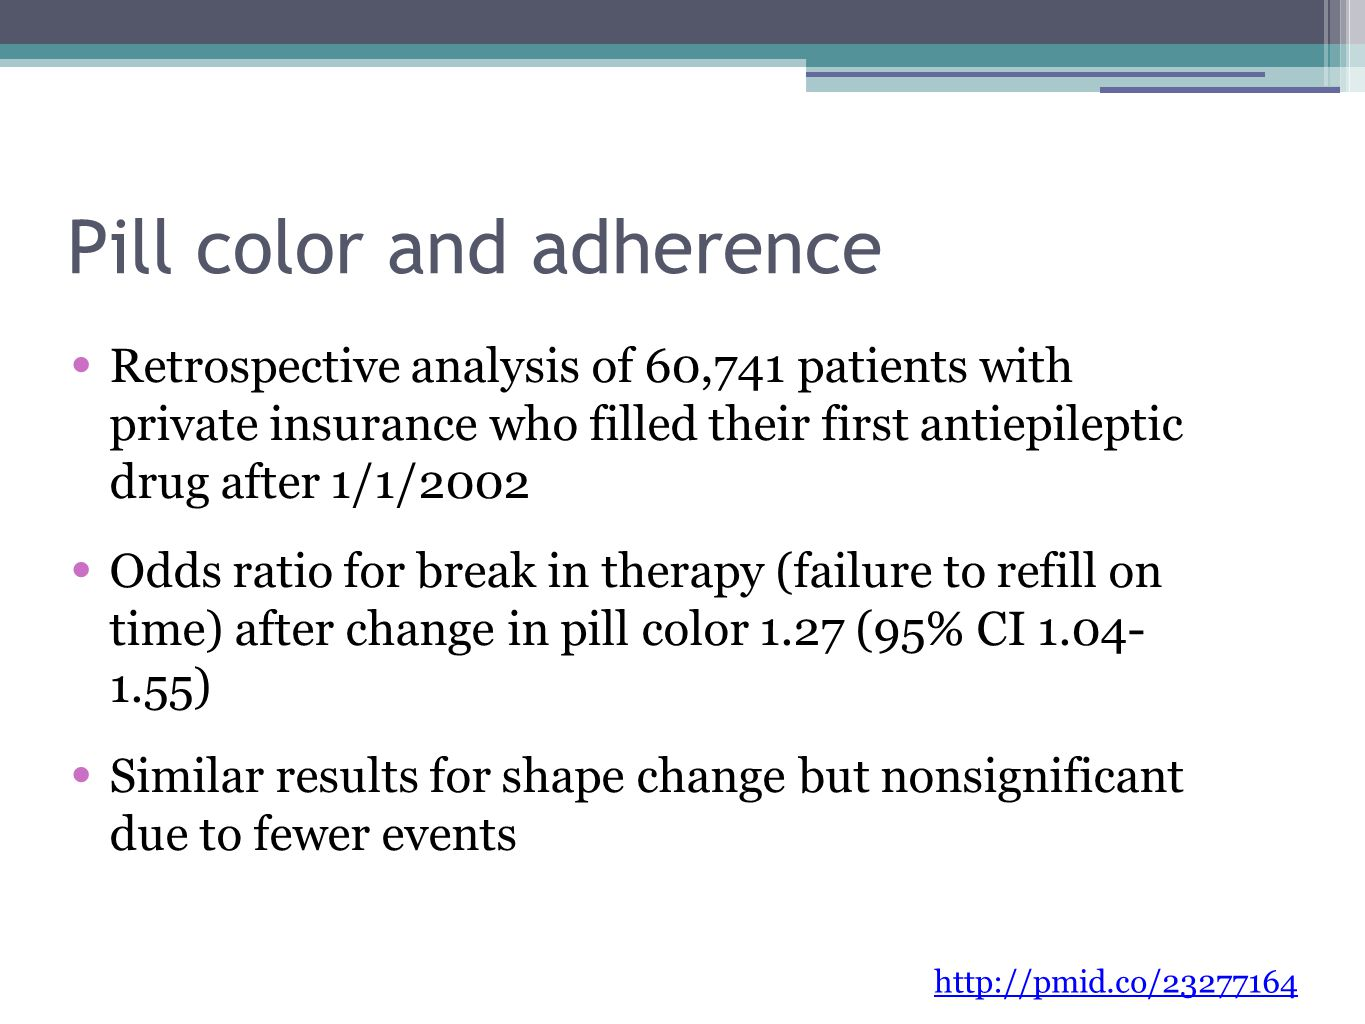 Pill color and adherence Retrospective analysis of 60,741 patients with private insurance who filled their first antiepileptic drug after 1/1/2002 Odds ratio for break in therapy (failure to refill on time) after change in pill color 1.27 (95% CI 1.04- 1.55) Similar results for shape change but nonsignificant due to fewer events http://pmid.co/23277164